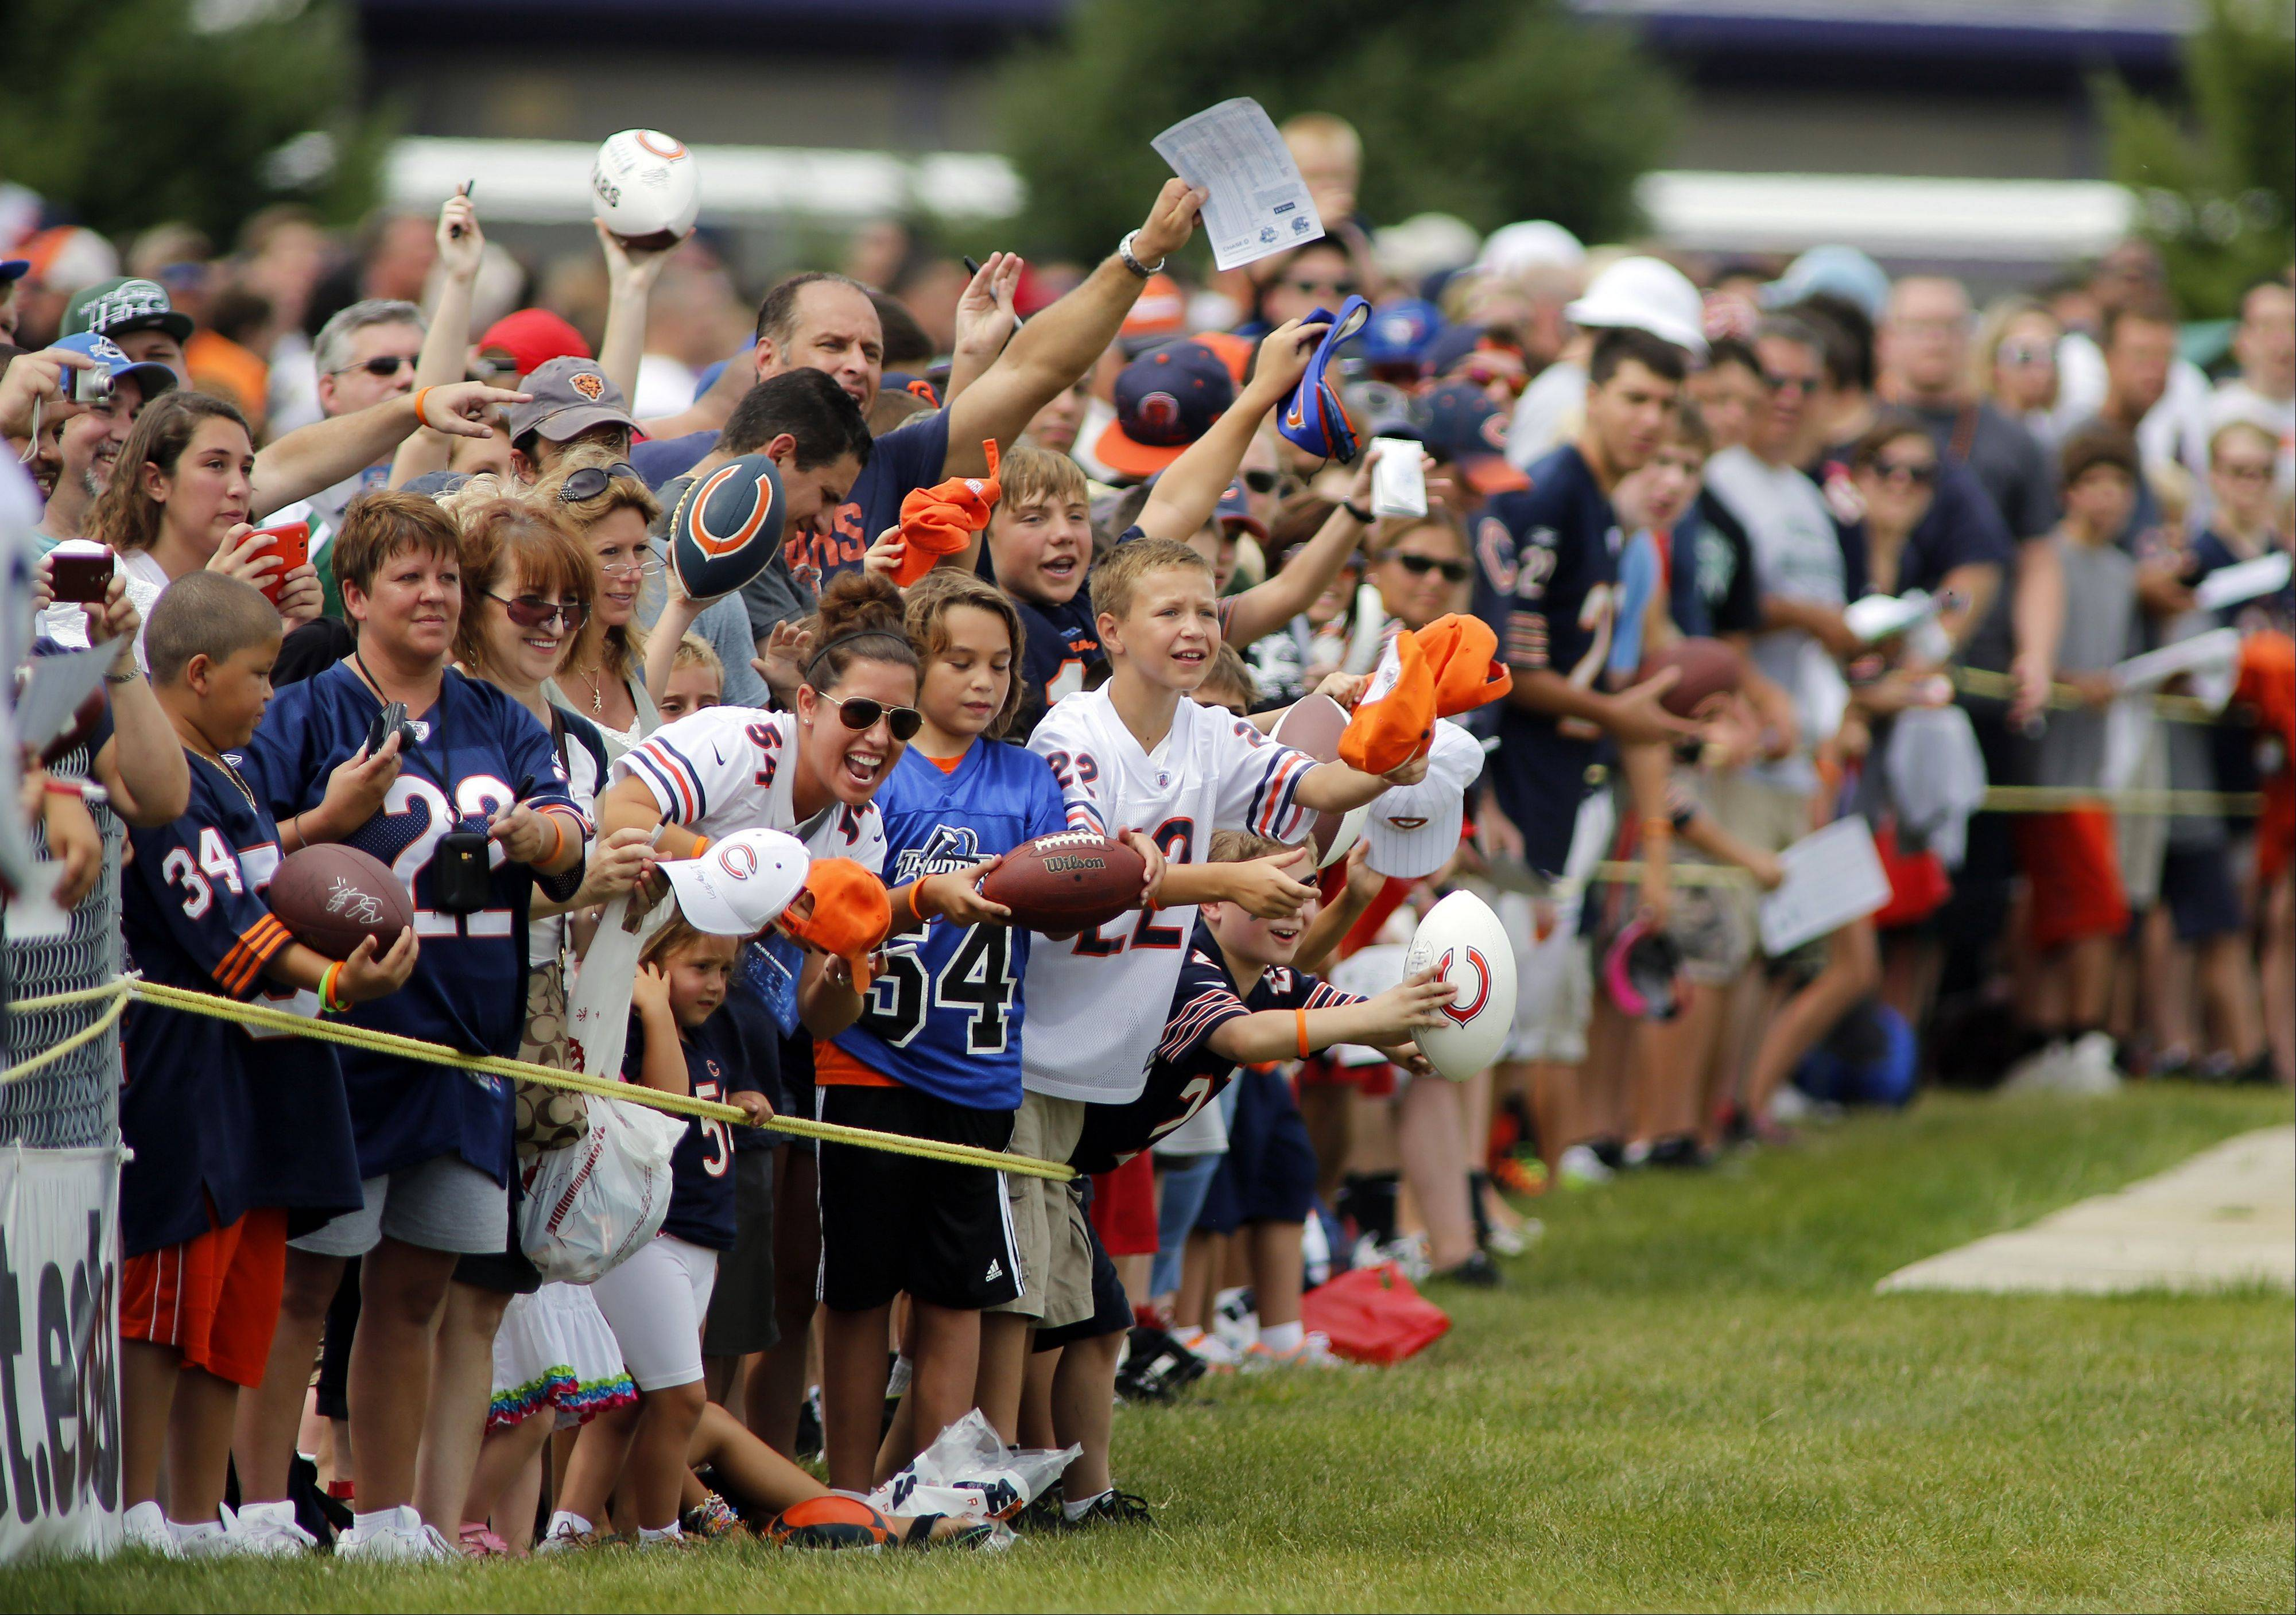 Fans wait for autographs after the Chicago Bears training camp on the campus of Olivet Nazarene University in Bourbonnais last Wednesday. The Bears have agreed to extend their partnership and hold training camp at ONU through 2022.